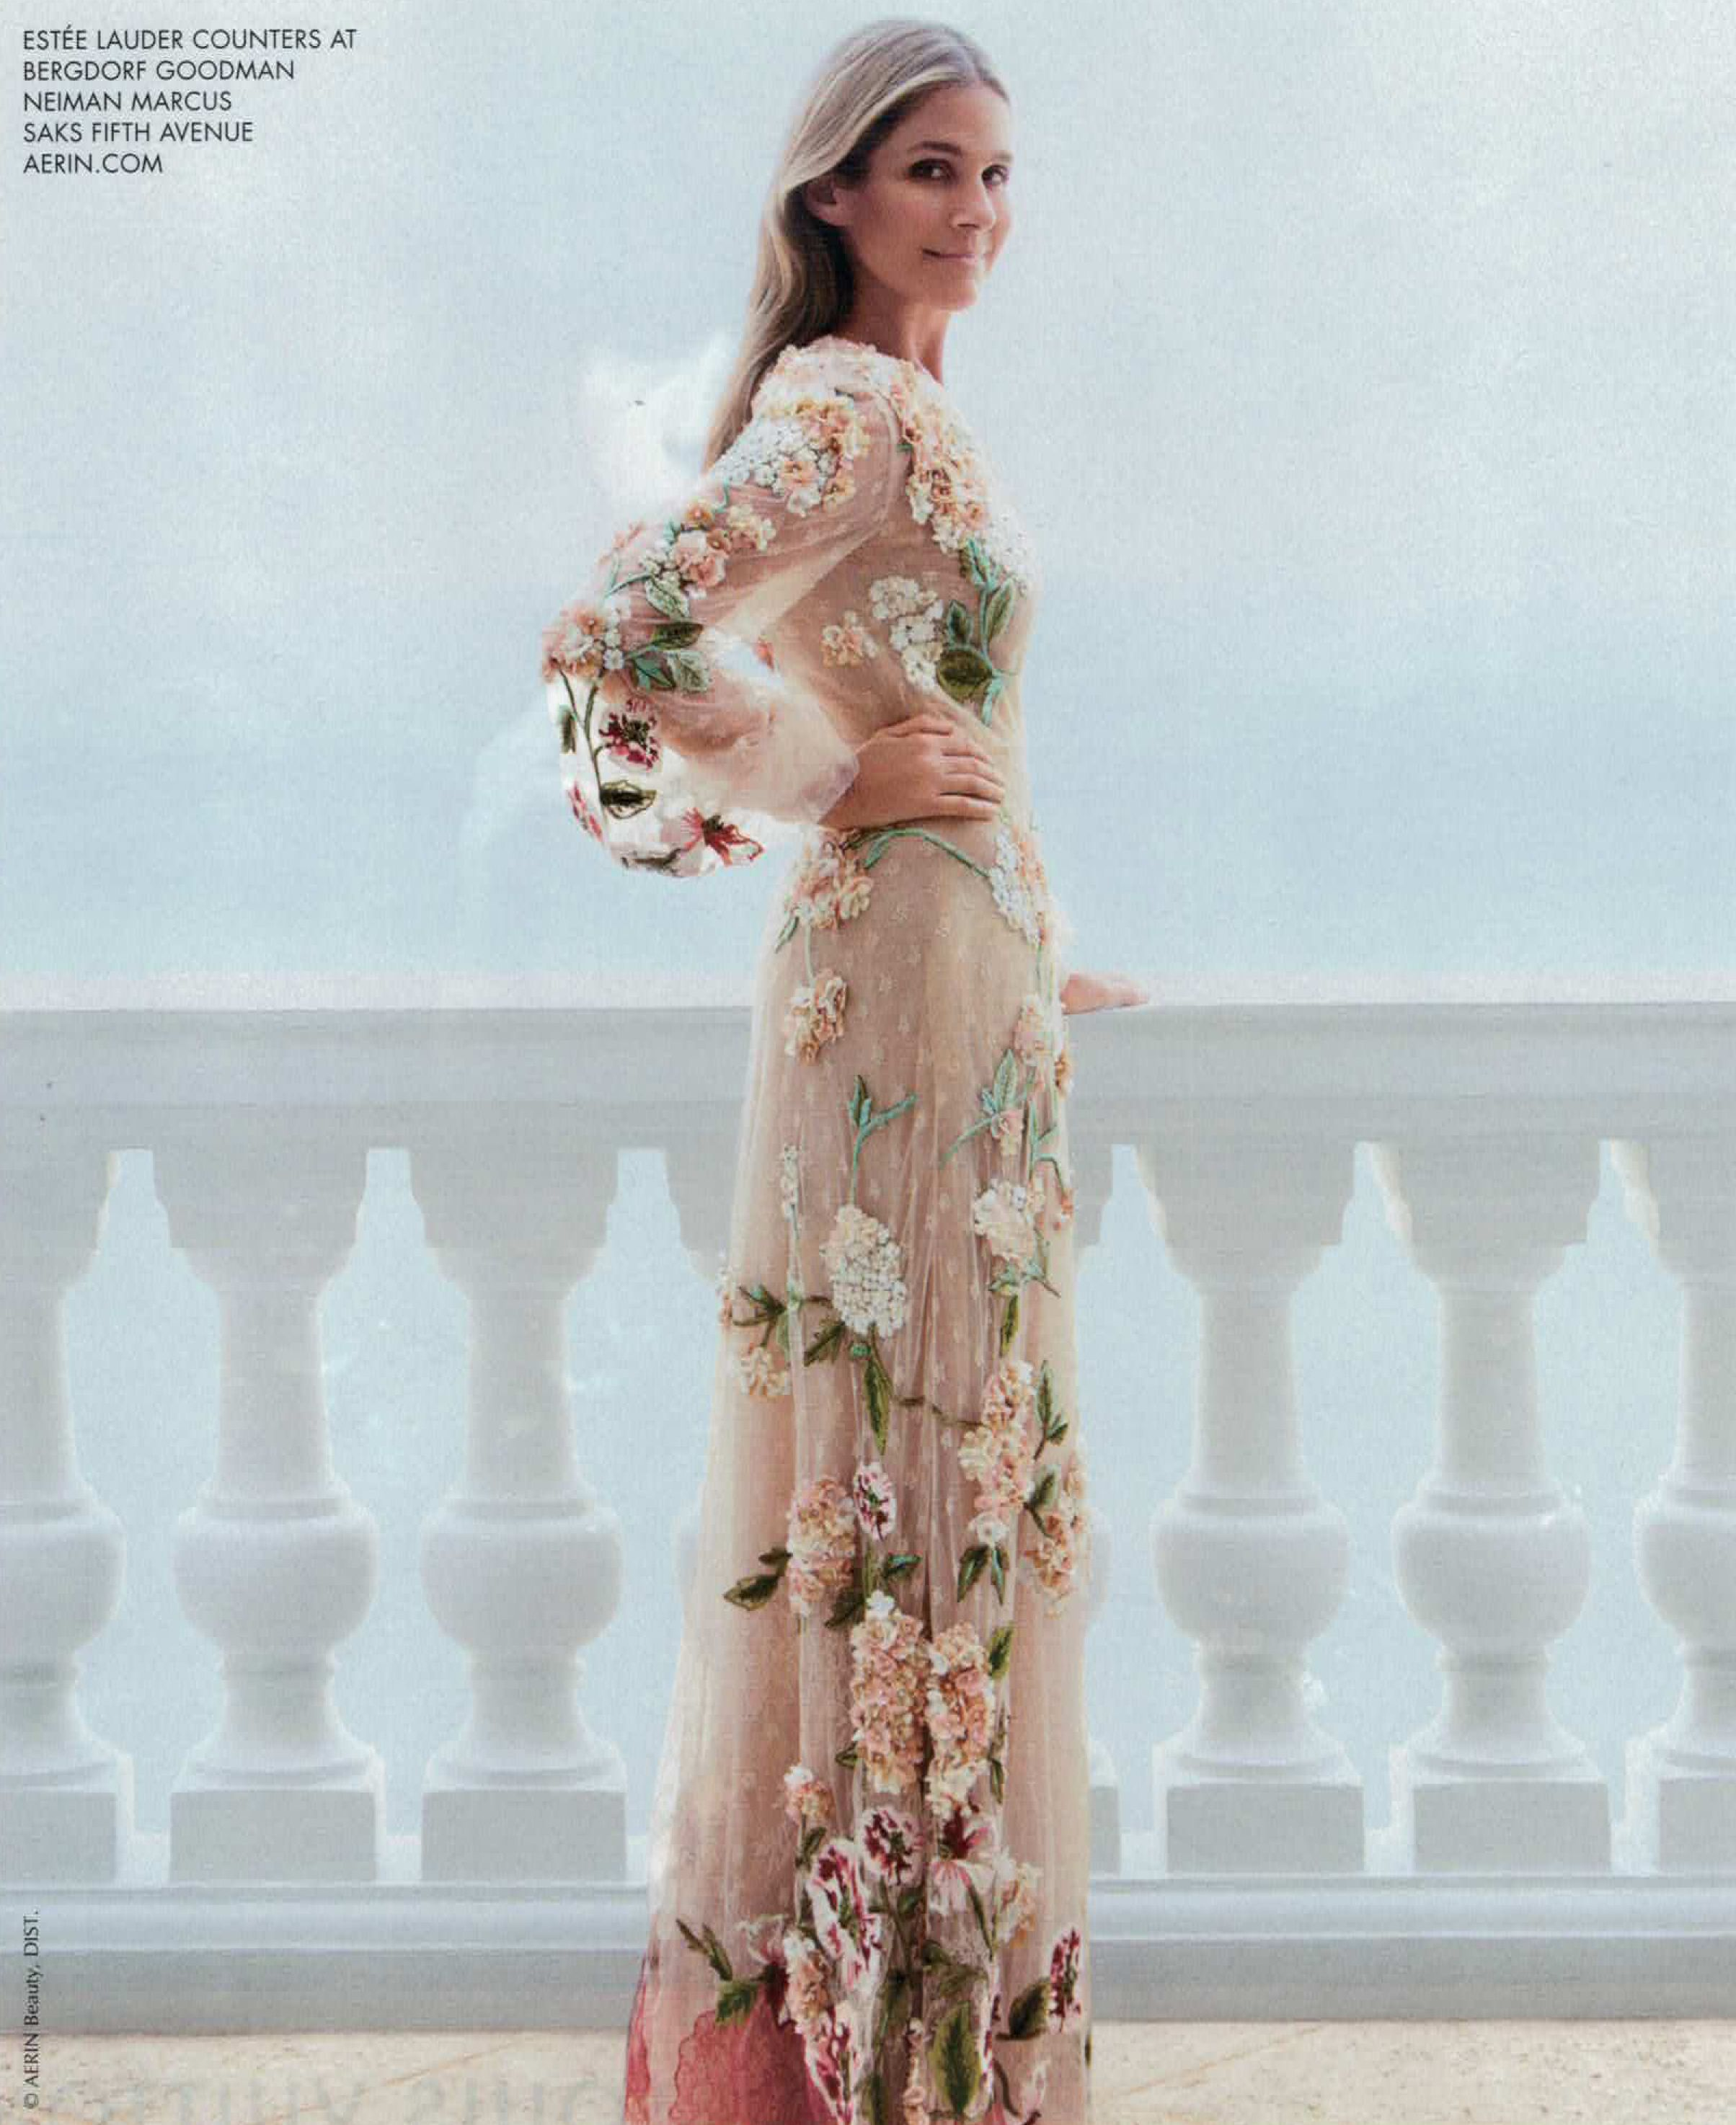 Saks Fifth Avenue Wedding Gowns: Lovely Estee Lauder Counters At